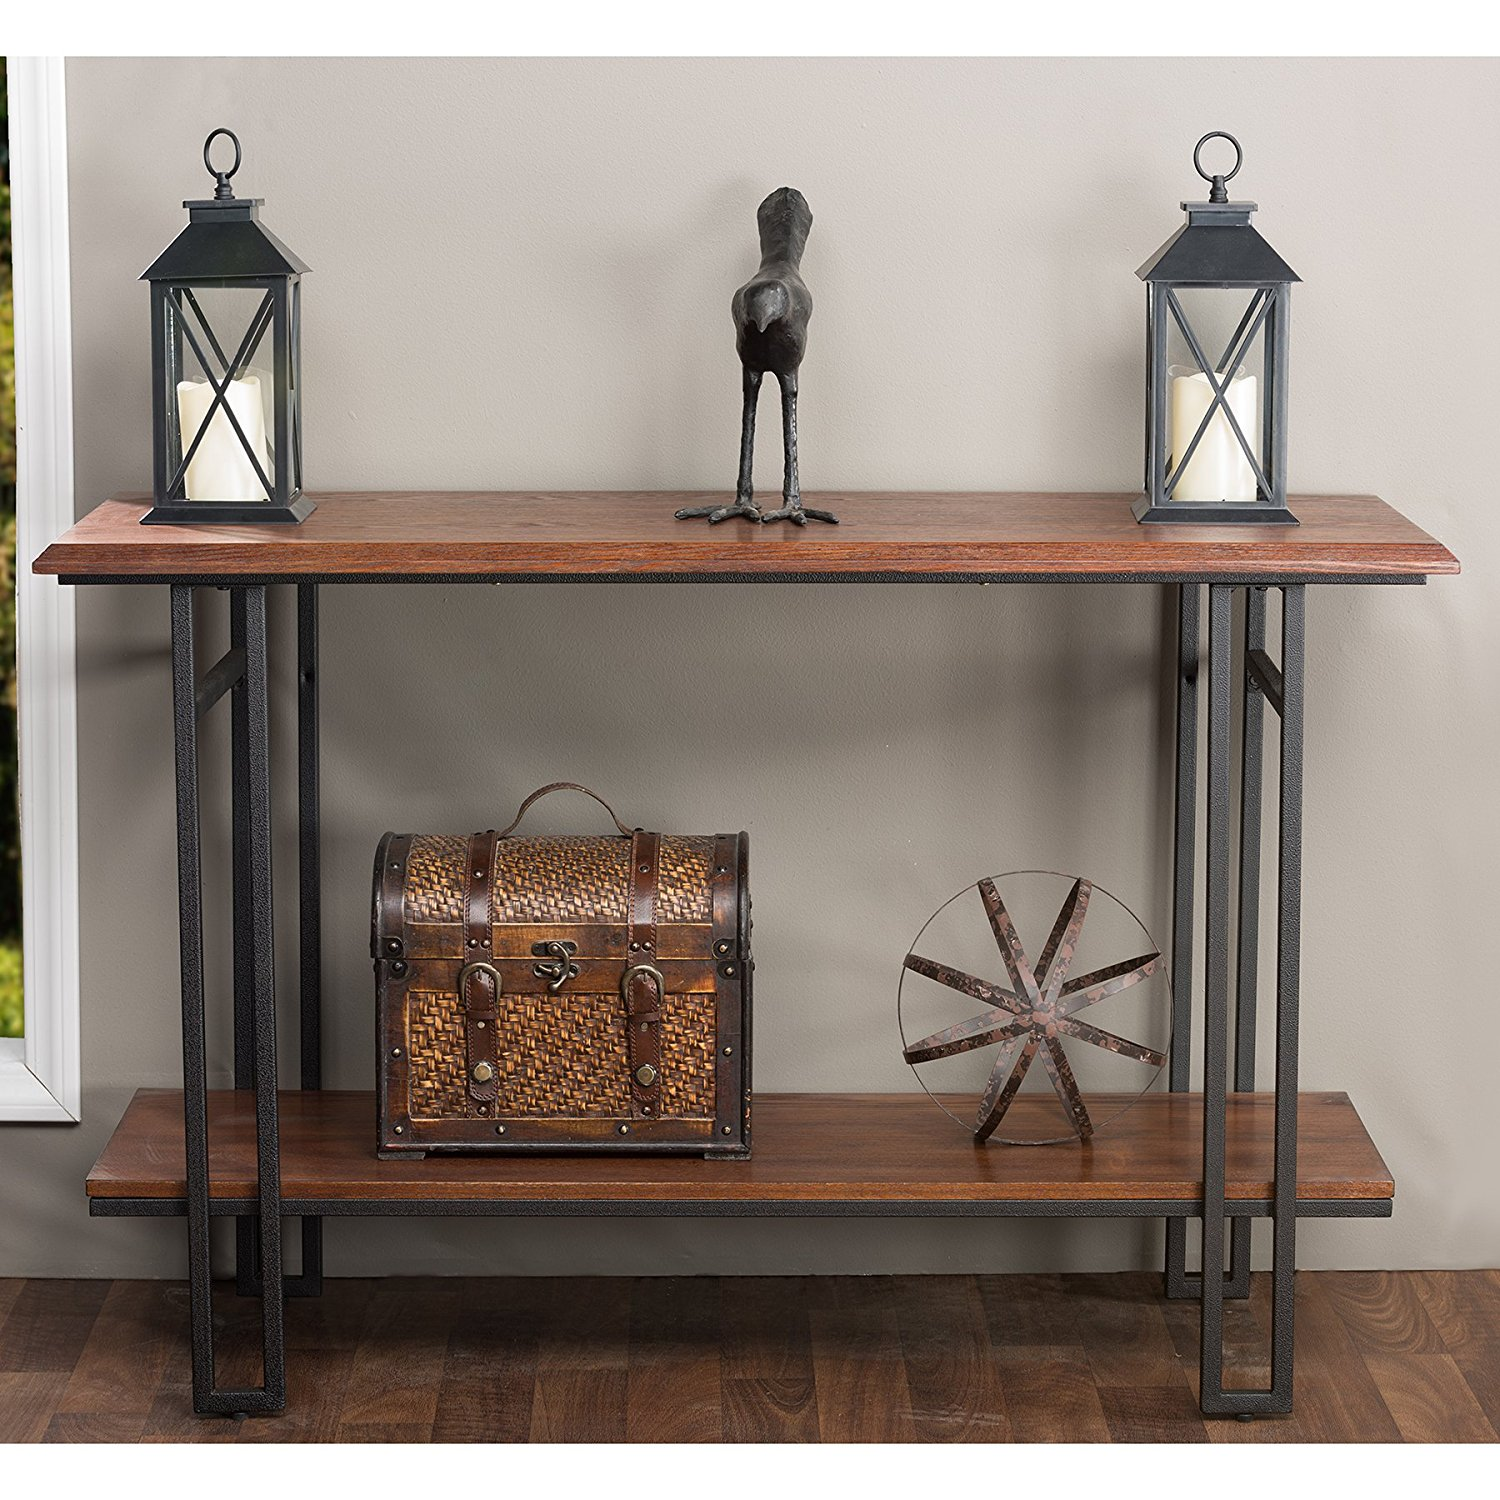 glamorous side console table wood and metal coffee tables end captivating amazing ideas furniture entrance lacquer round small glass top gold set skinny iron narrow living room